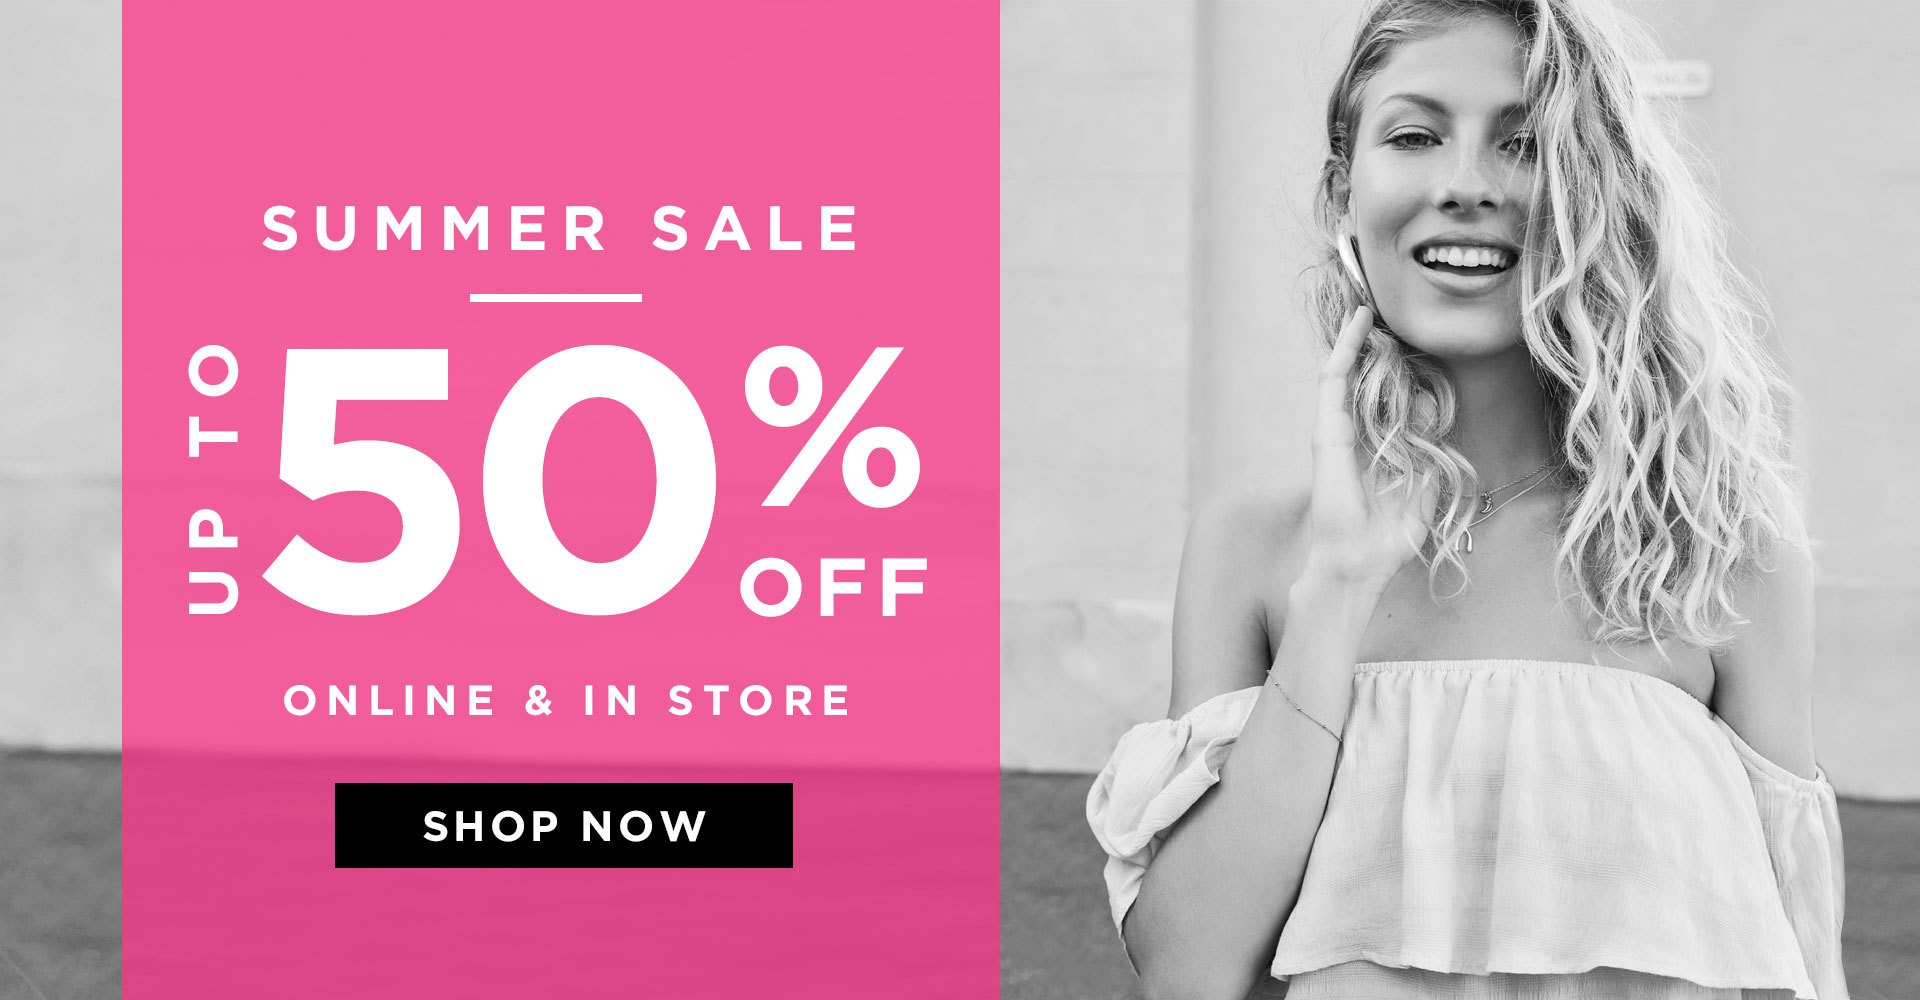 Bargain - Up to 50% OFF - Summer Sale @ Glassons